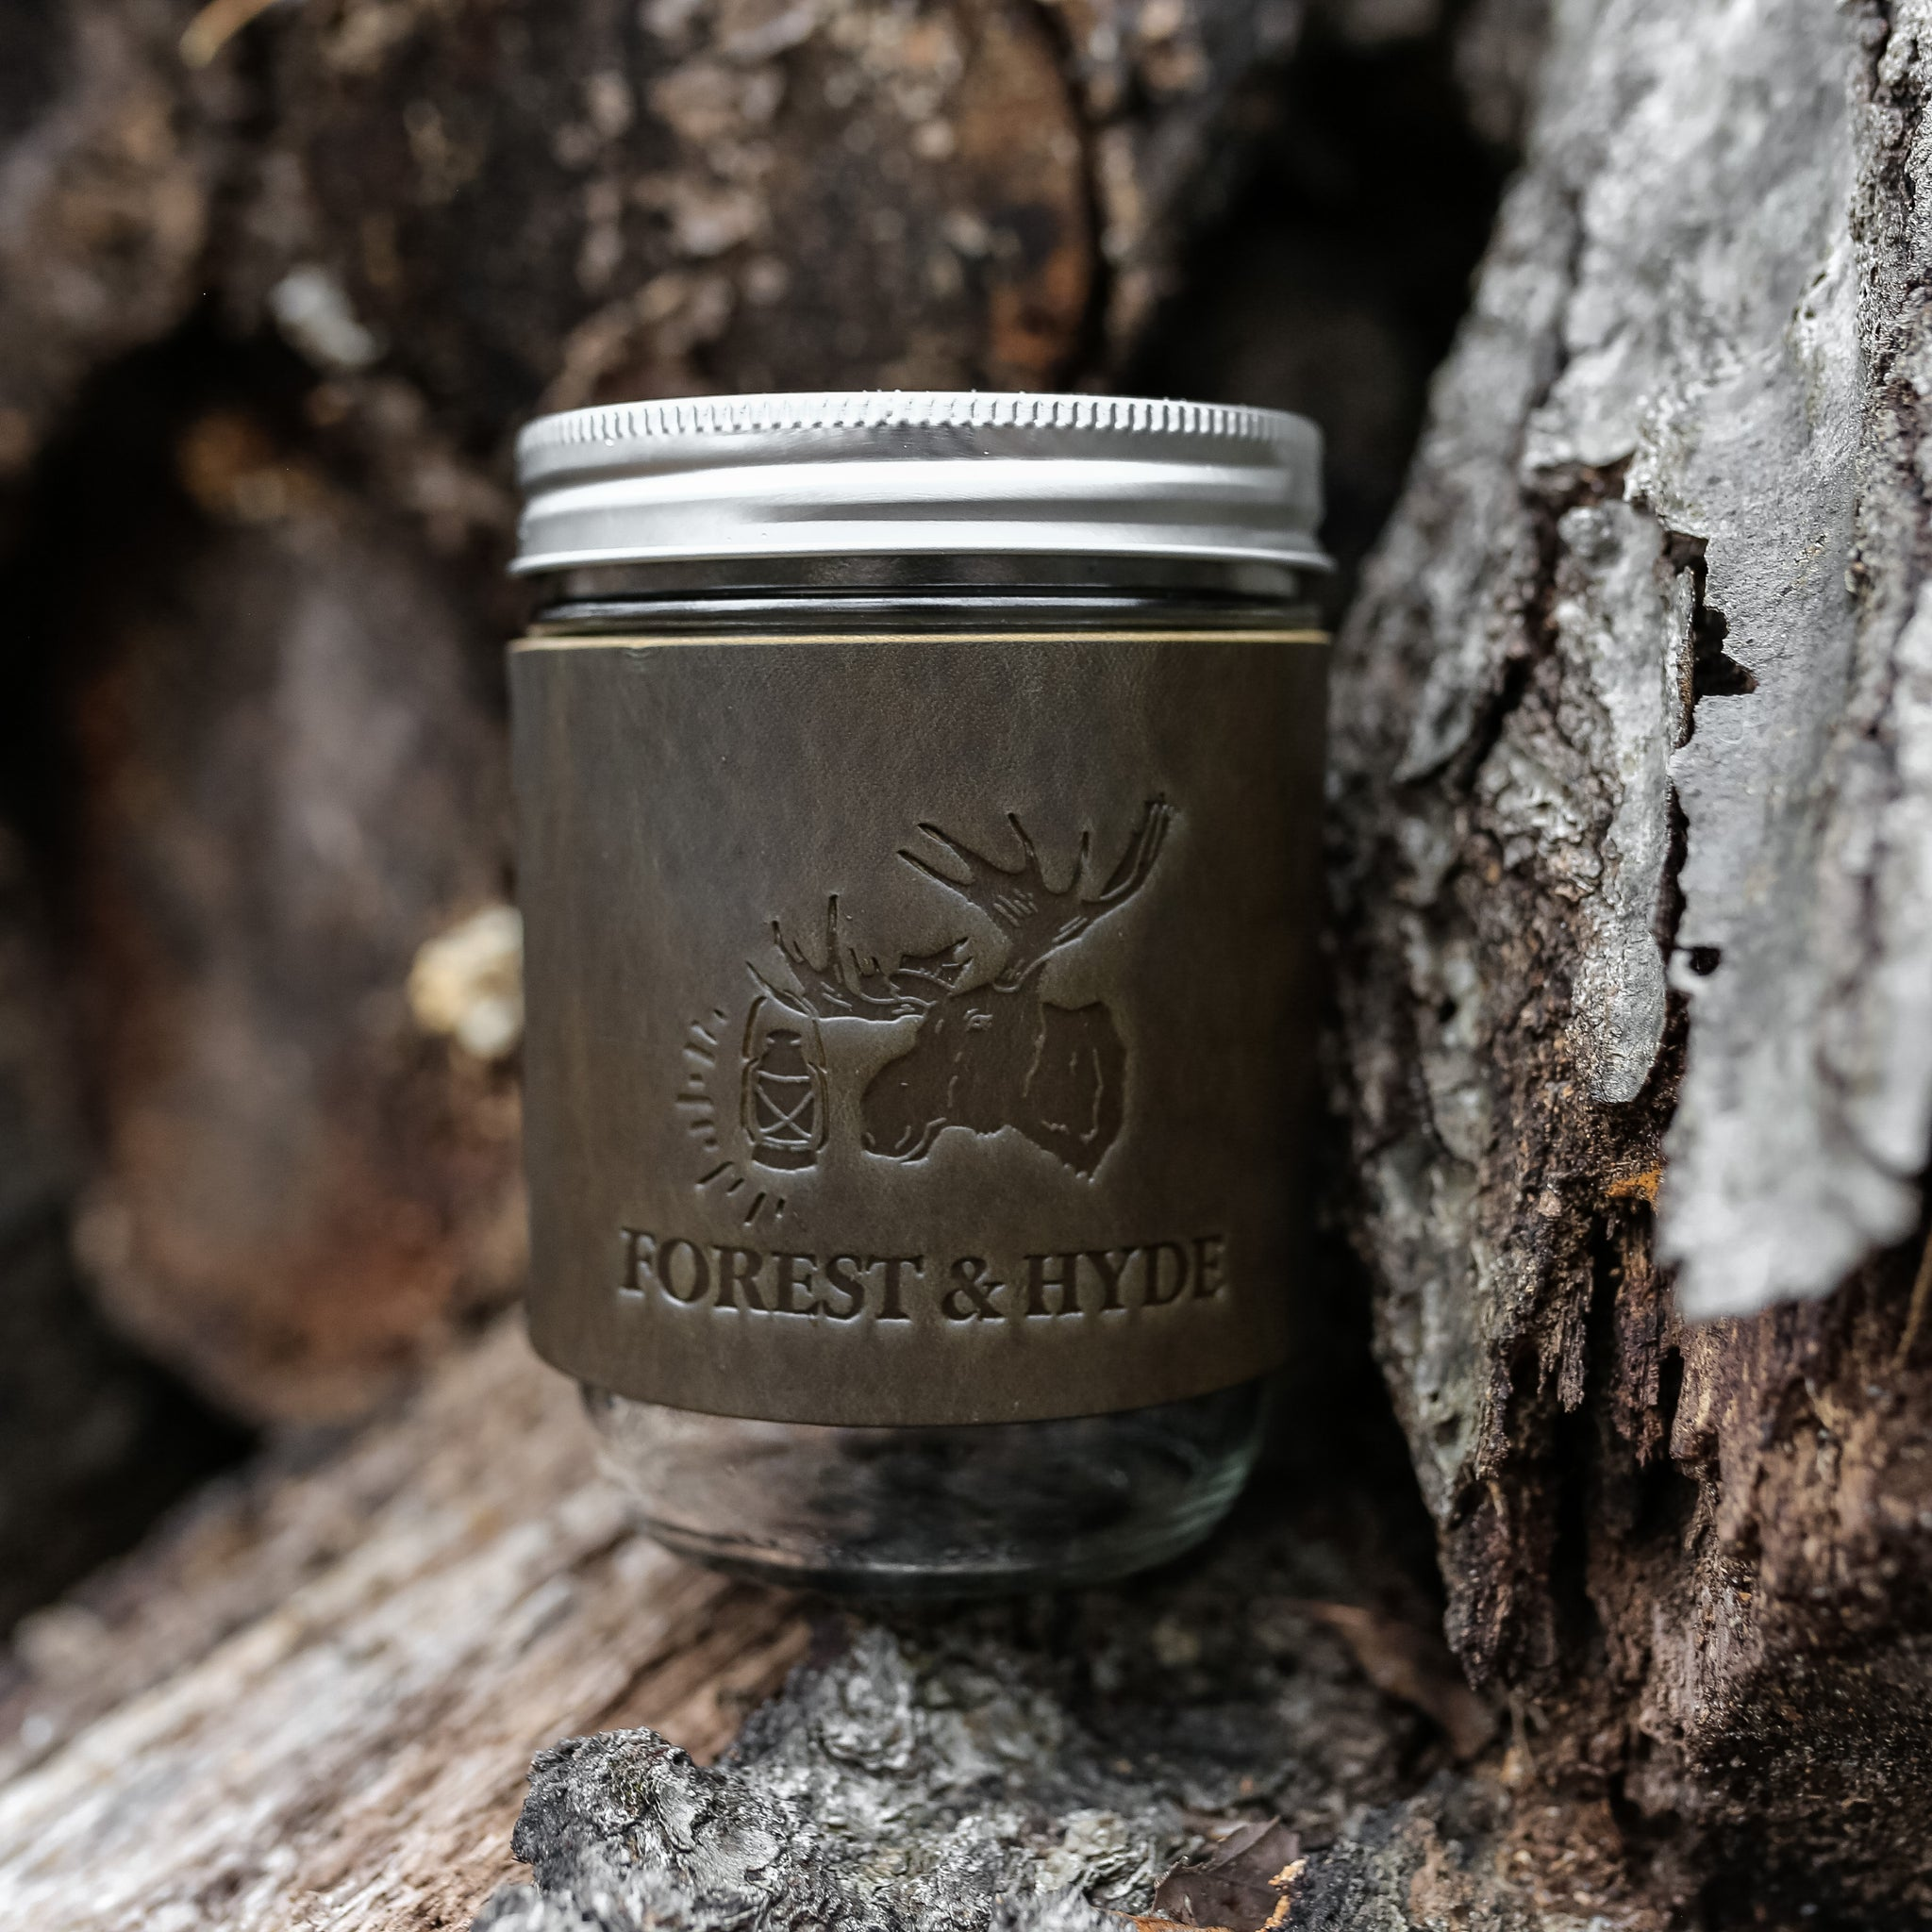 Camp Green Forest & Hyde Mug